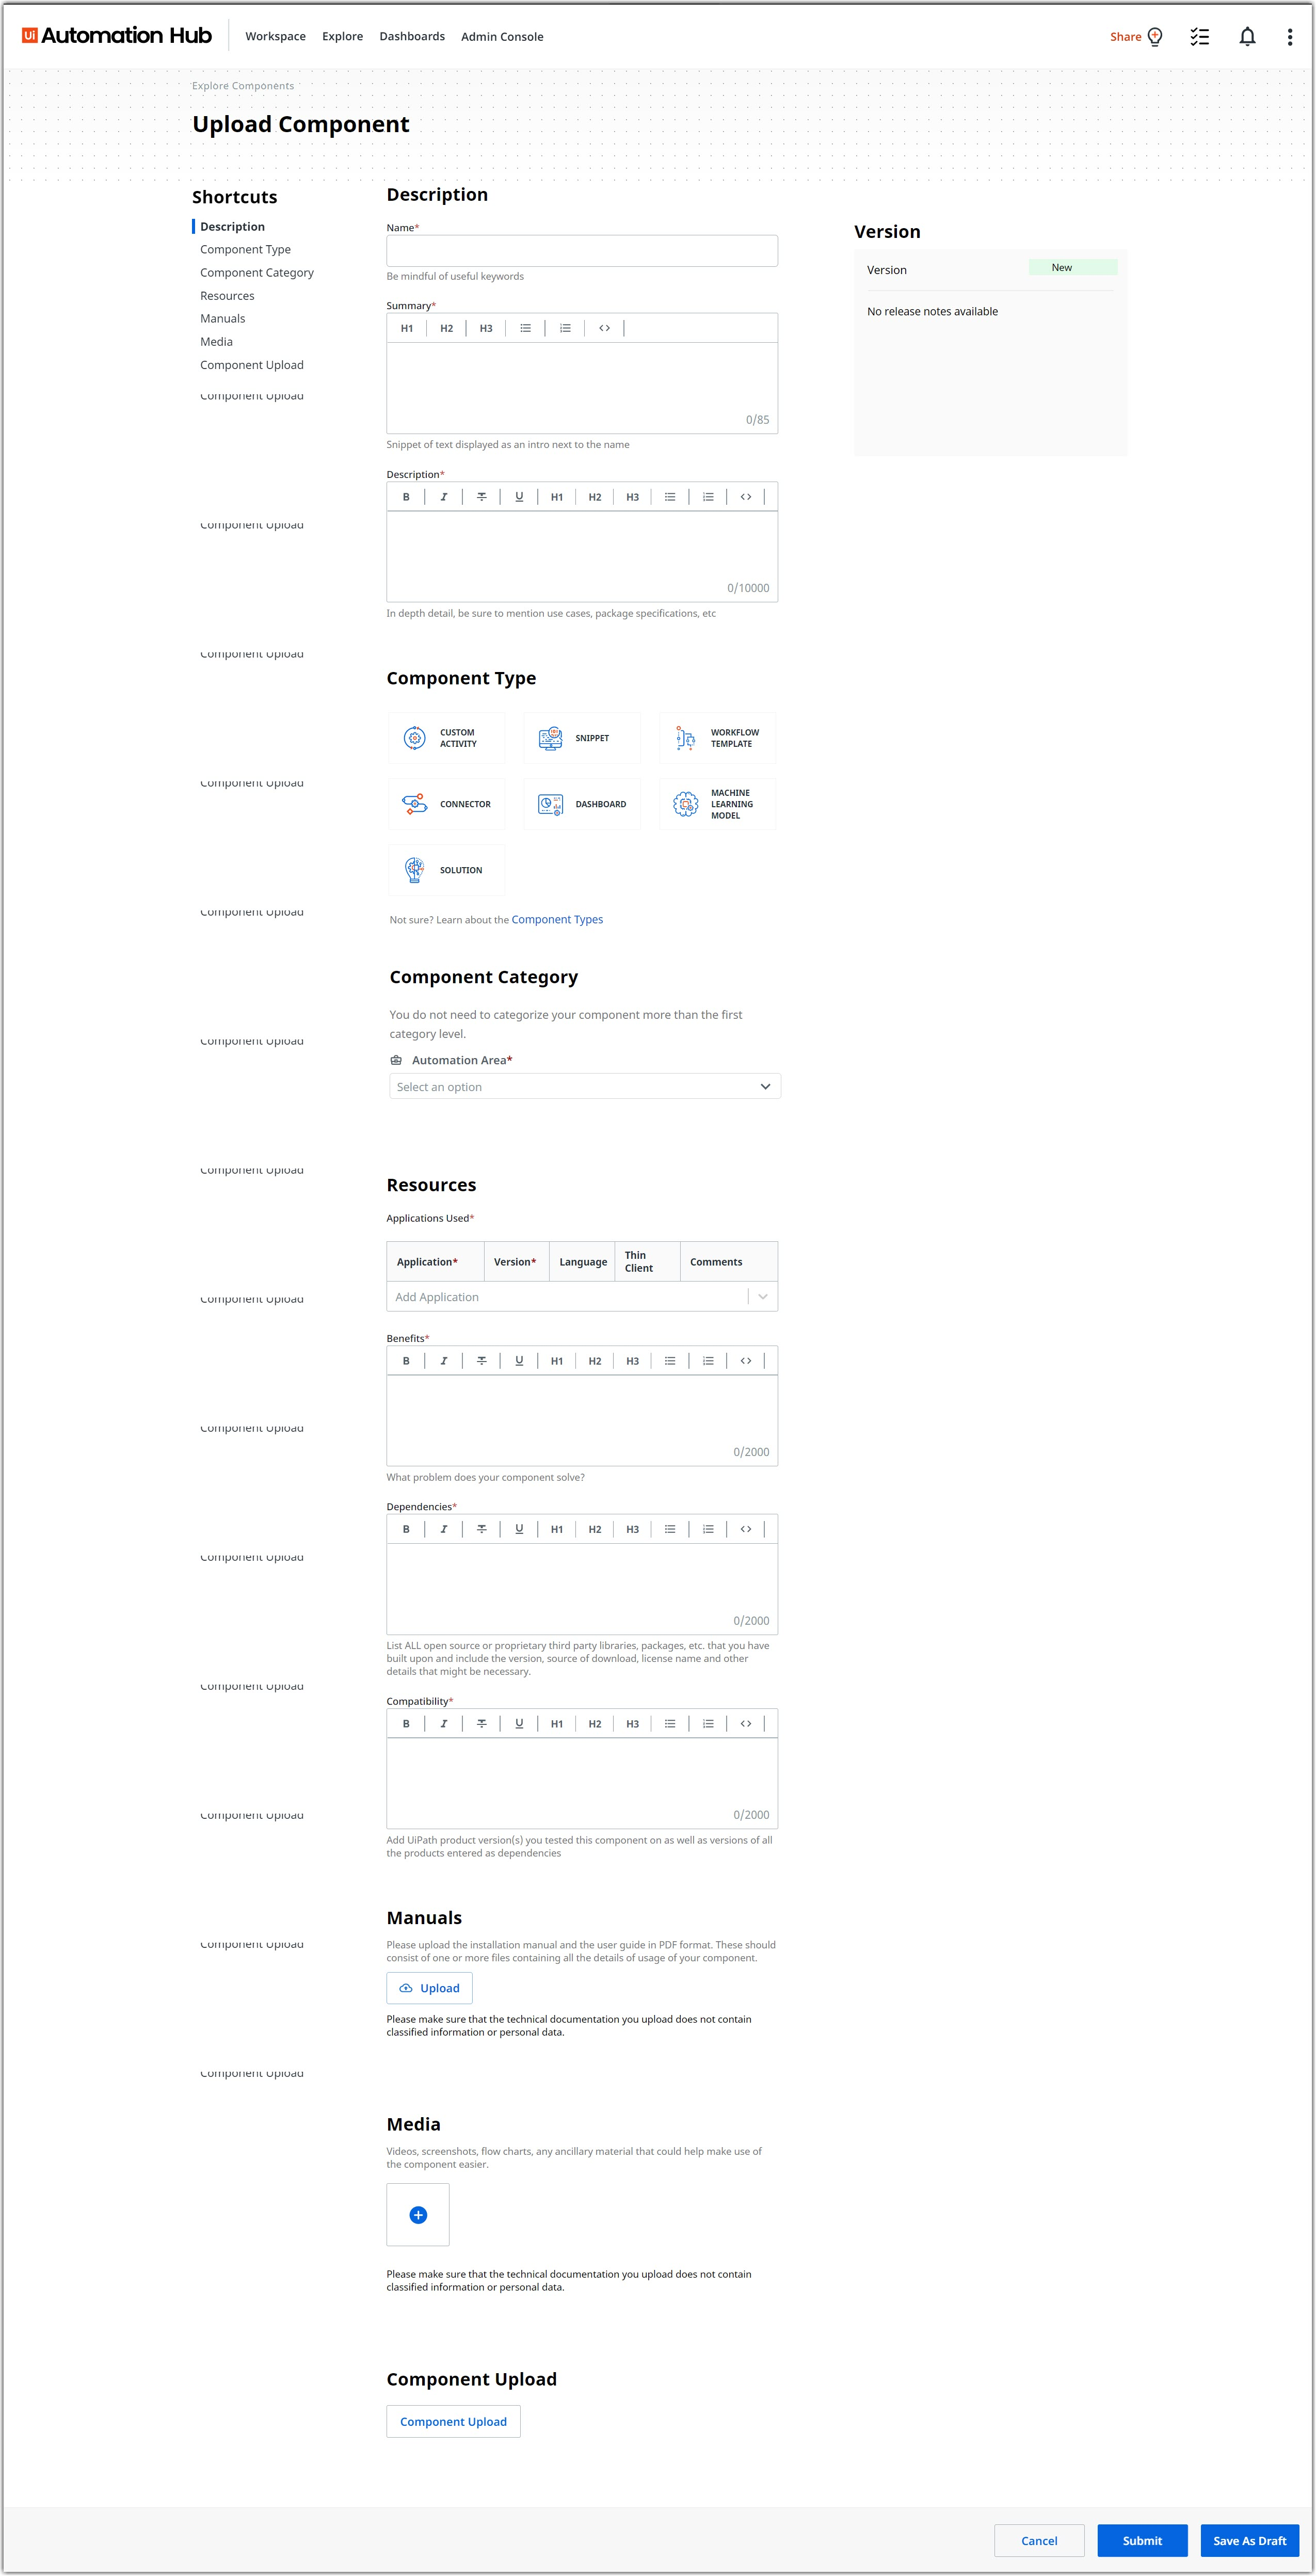 Upload a component page